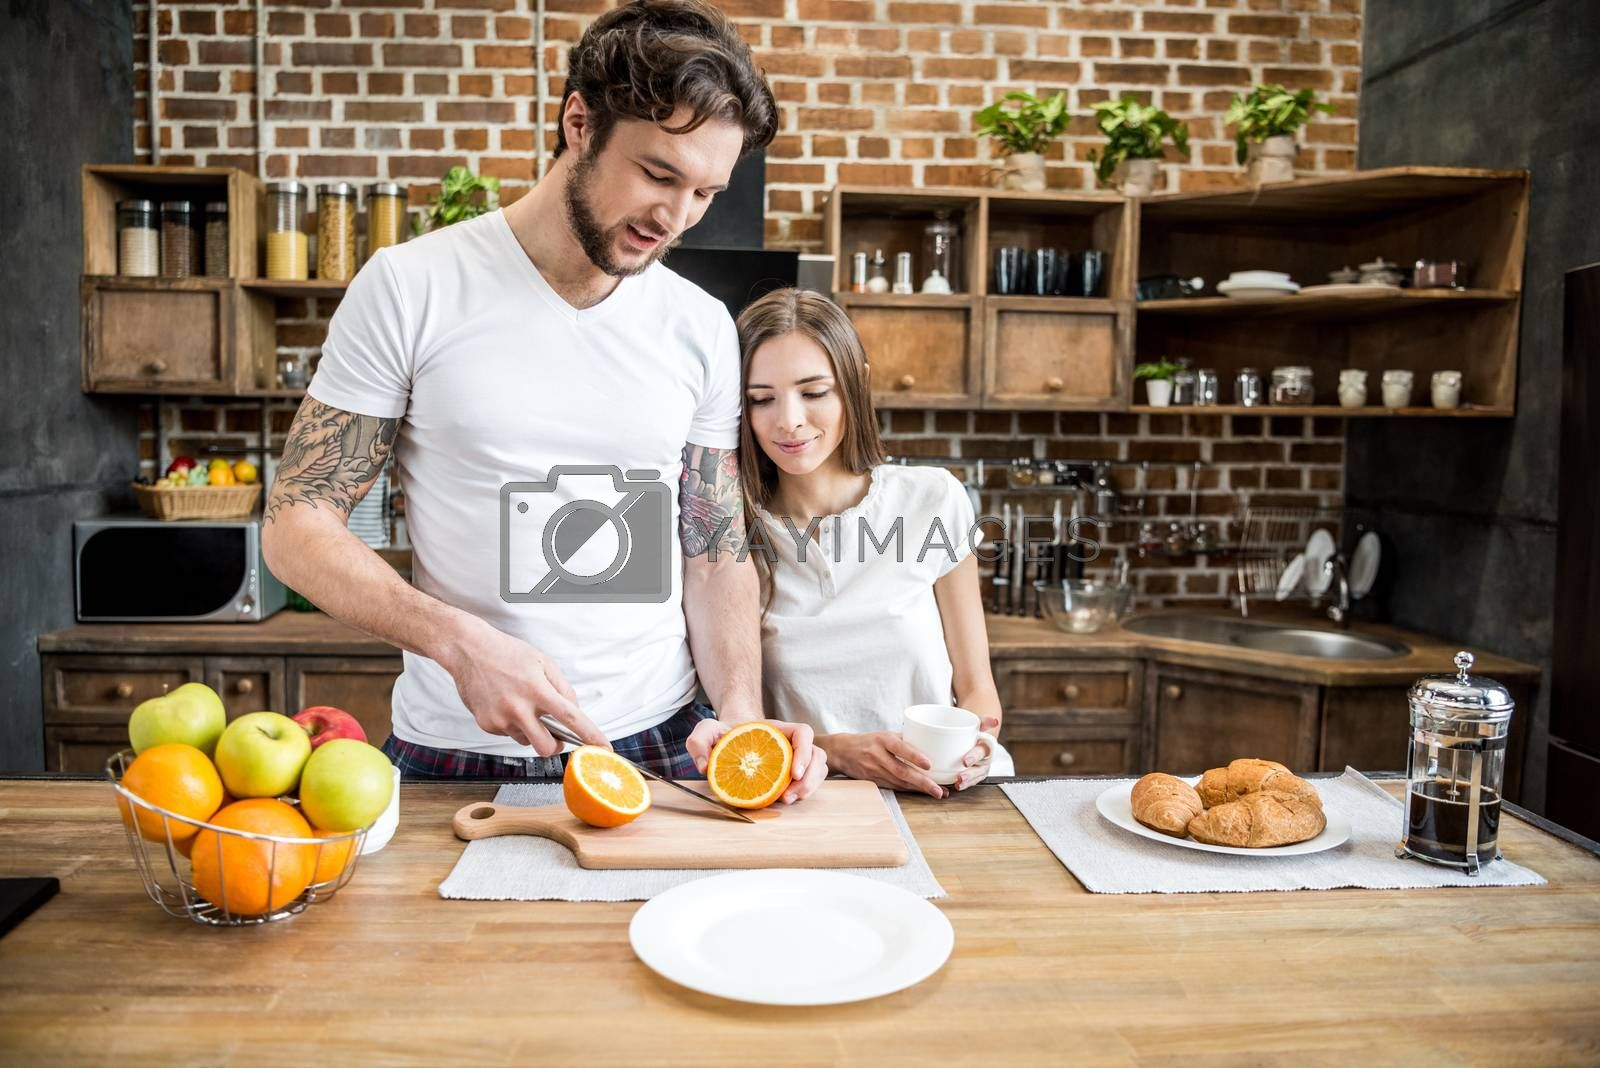 Attractive woman with coffee cup looking at young man cutting orange in kitchen